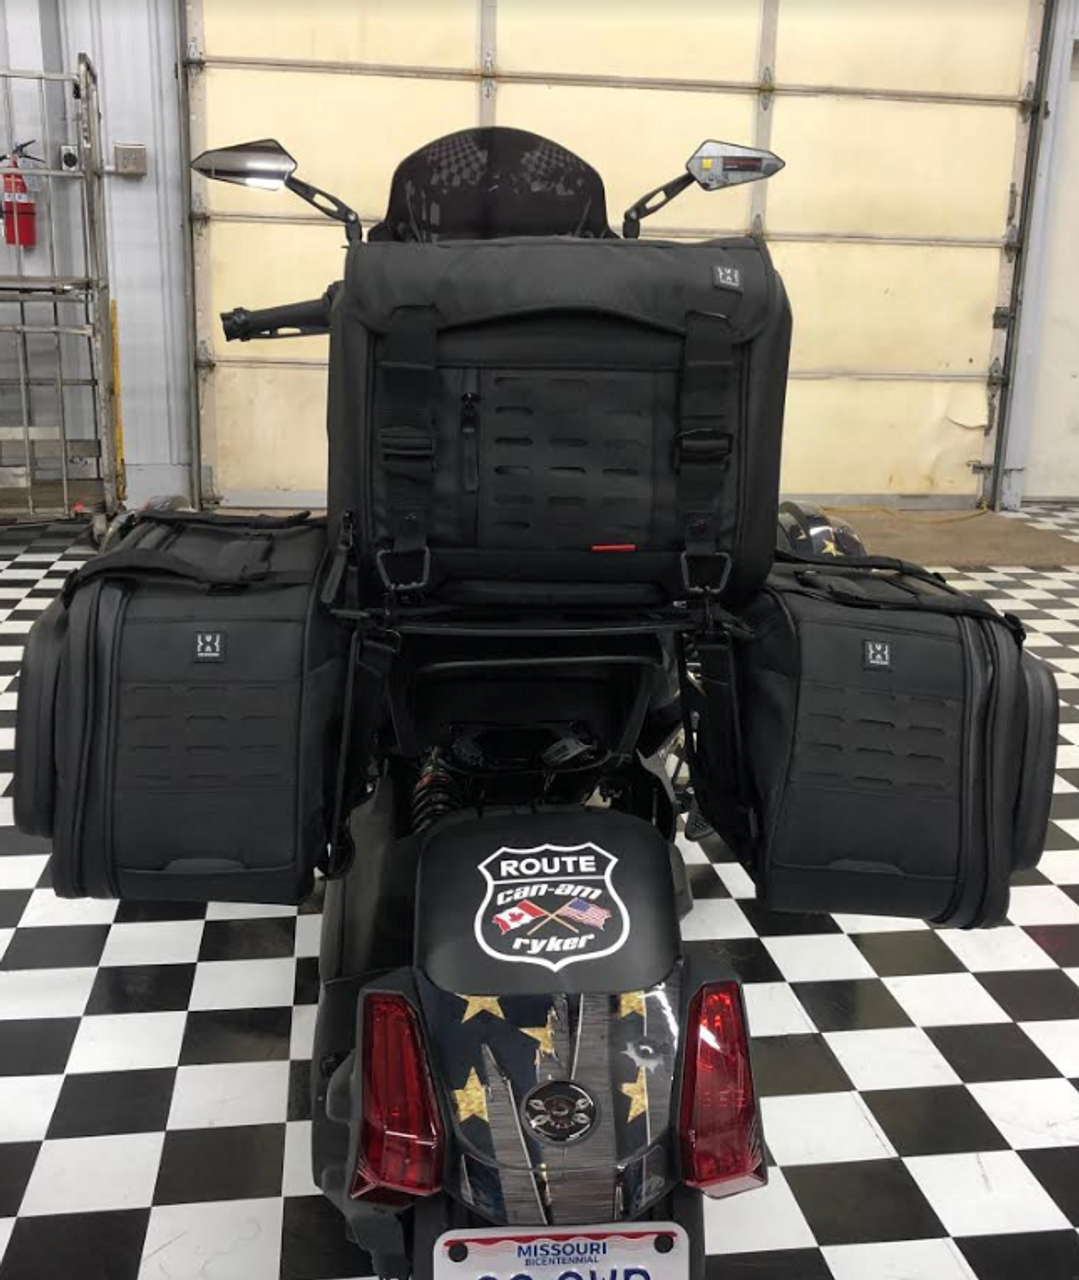 IPS Rack and Saddlebag Standoffs for the Can Am Ryker (LG-1062-1061) by Lamonster (Kuryakyn Bags SOLD SEPARATELY) Shown with KYN-5295 and KYN-5293